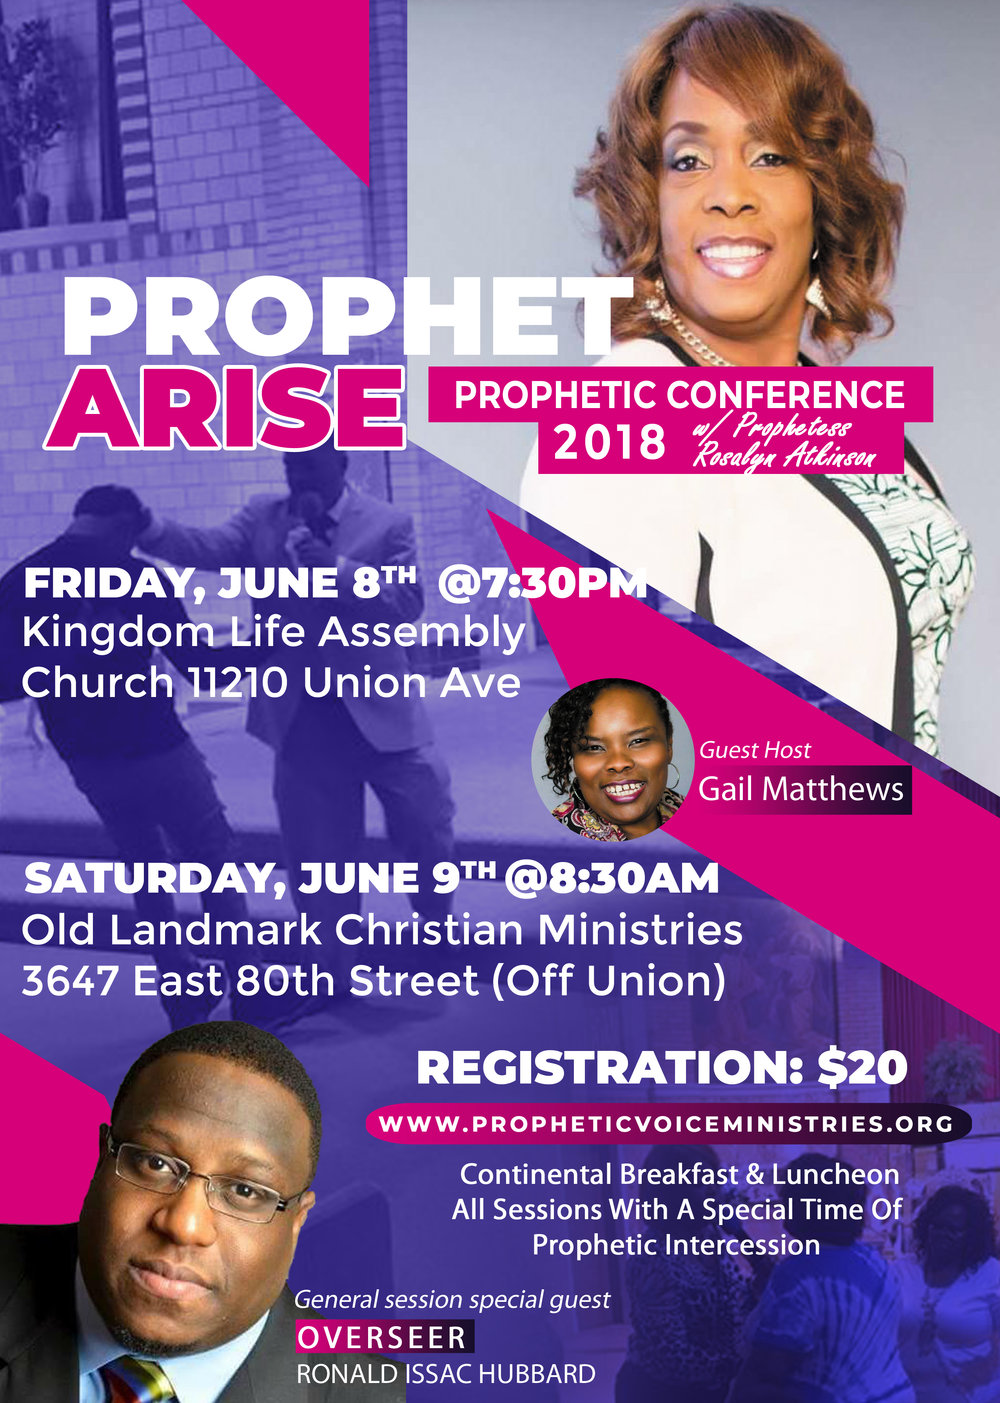 Prophet Arise Prophetic Conference 2018 - If you missed it last year, you don't want to miss it this year! The annual Prophetic conference is power packed this year. Prophetess Rosalyn will ministering the word while speaking prophetically as lead by the Holy Spirit to individuals. On day two learn from Prophet and Overseer Ronald Hubbard. This prophet is pure at heart and has a clear connection with the Lord, prophesying with accuracy. He will be teaching on the Prophetic during the General Sessions. Need your gift to be stirred and activated. This will be the place to be. Mark you calendars and Register today. VENDOR TABLES AVAILABLE: $25Share and Sell your products and services during this great event. Vendor opportunities will be on Saturday, June 9th.  Vendor Location: Old Landmark Christian Ministries 3647 East 80th Street (Off Union) CLICK HERE TO REGISTER FOR VENDOR TABLES NOW!